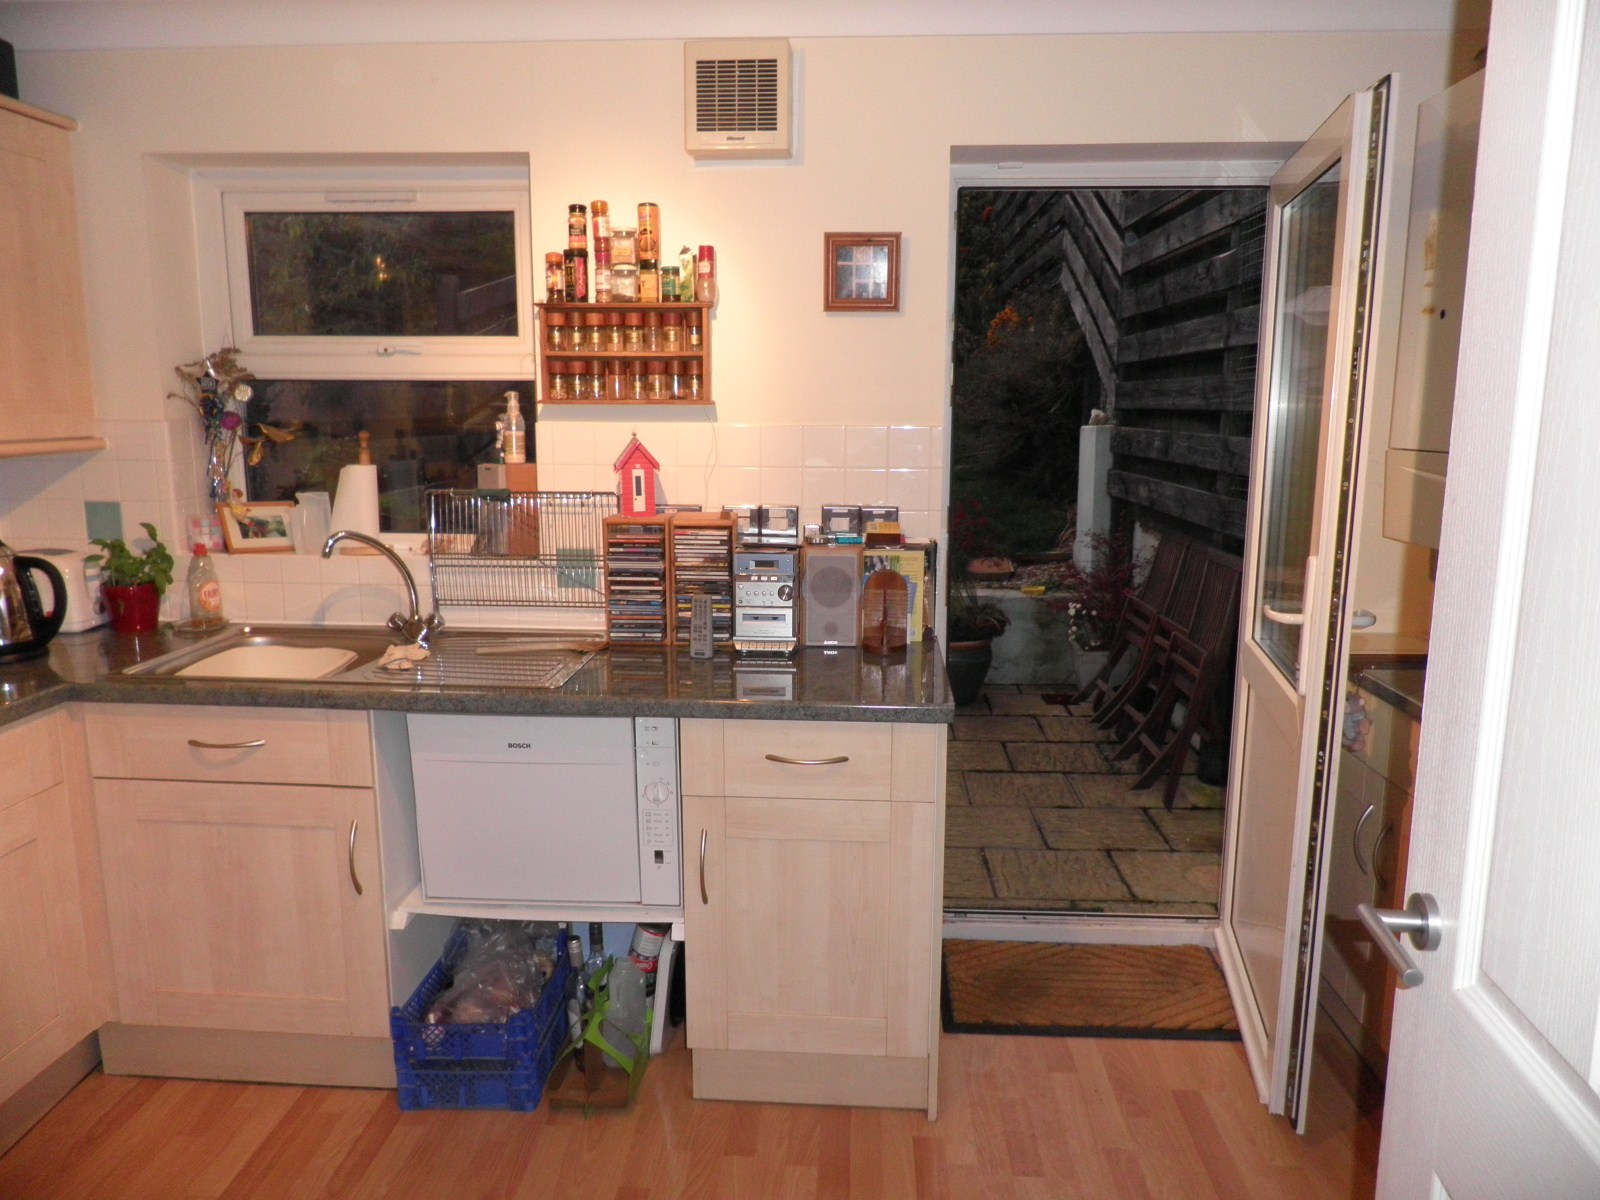 View from Kitchen - Before